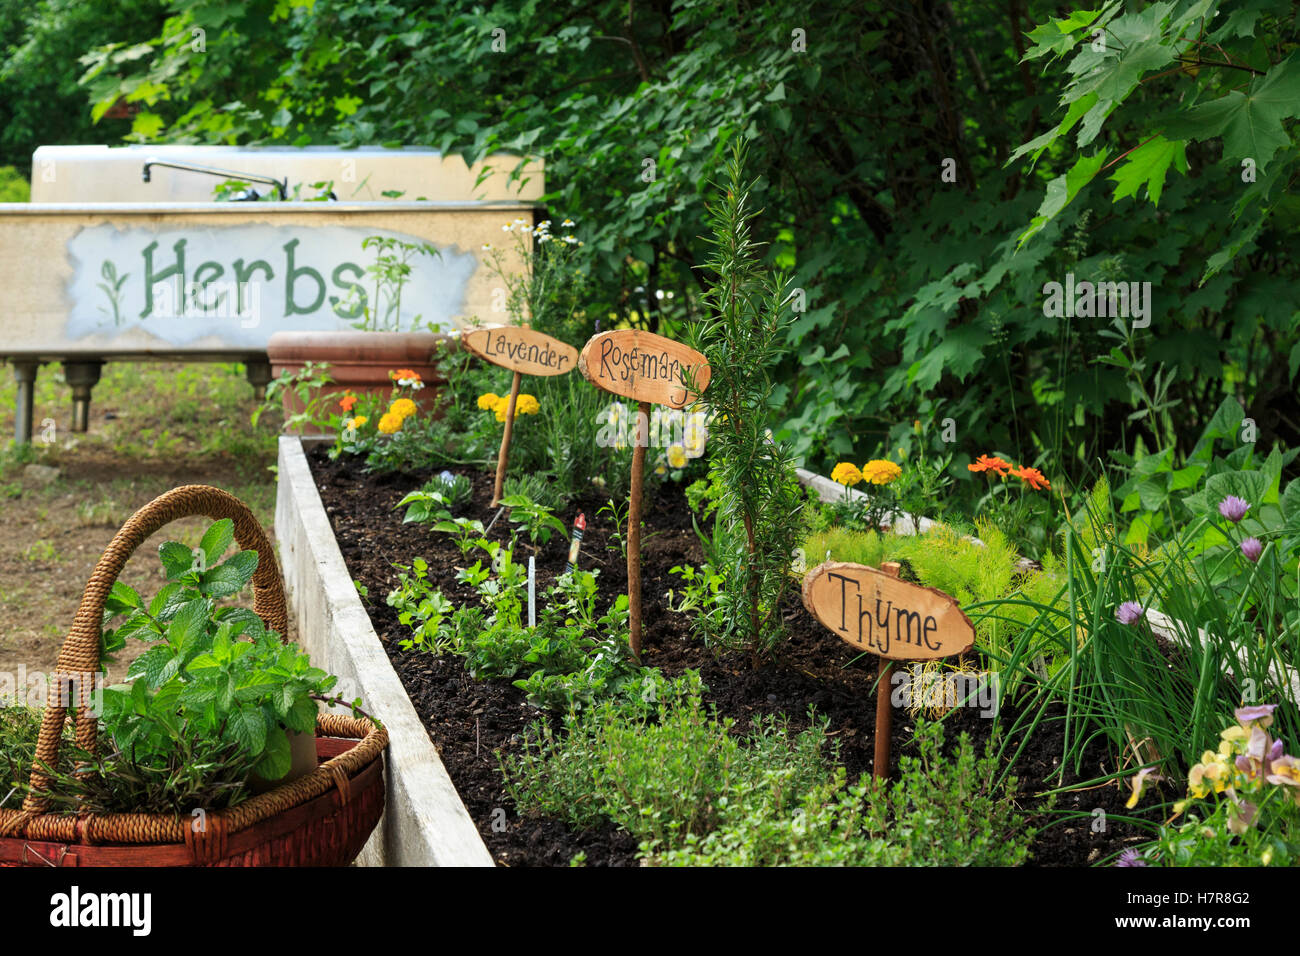 Herb Garden With Signs, New Hampshire   Stock Image